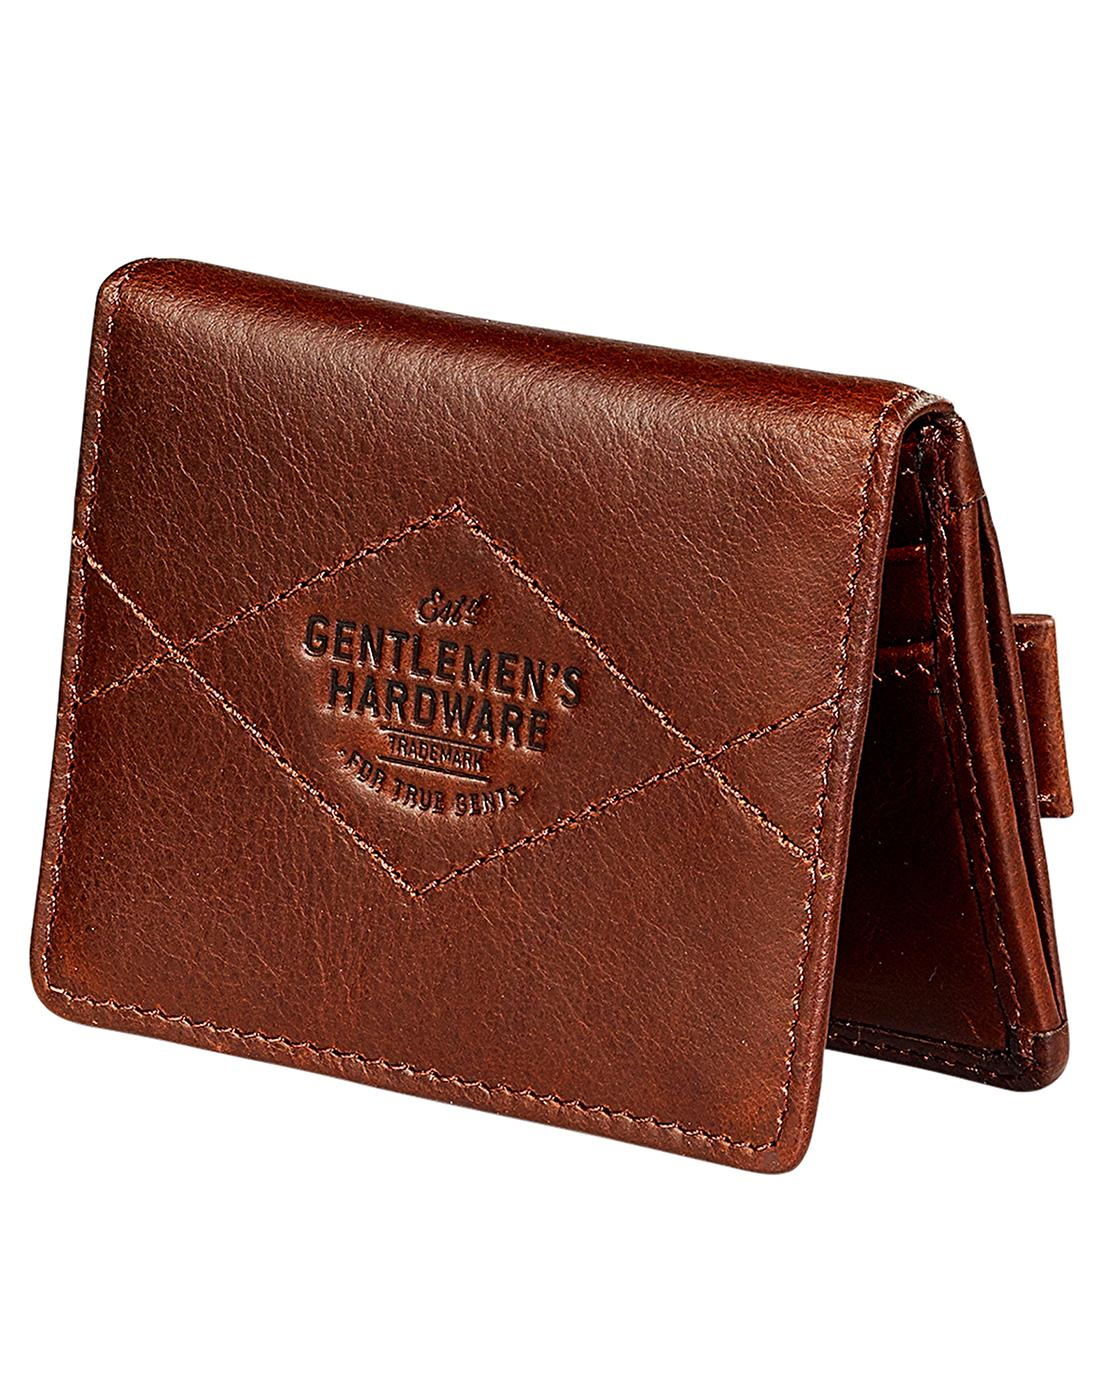 GENTLEMEN'S HARDWARE Leather Double Card Holder